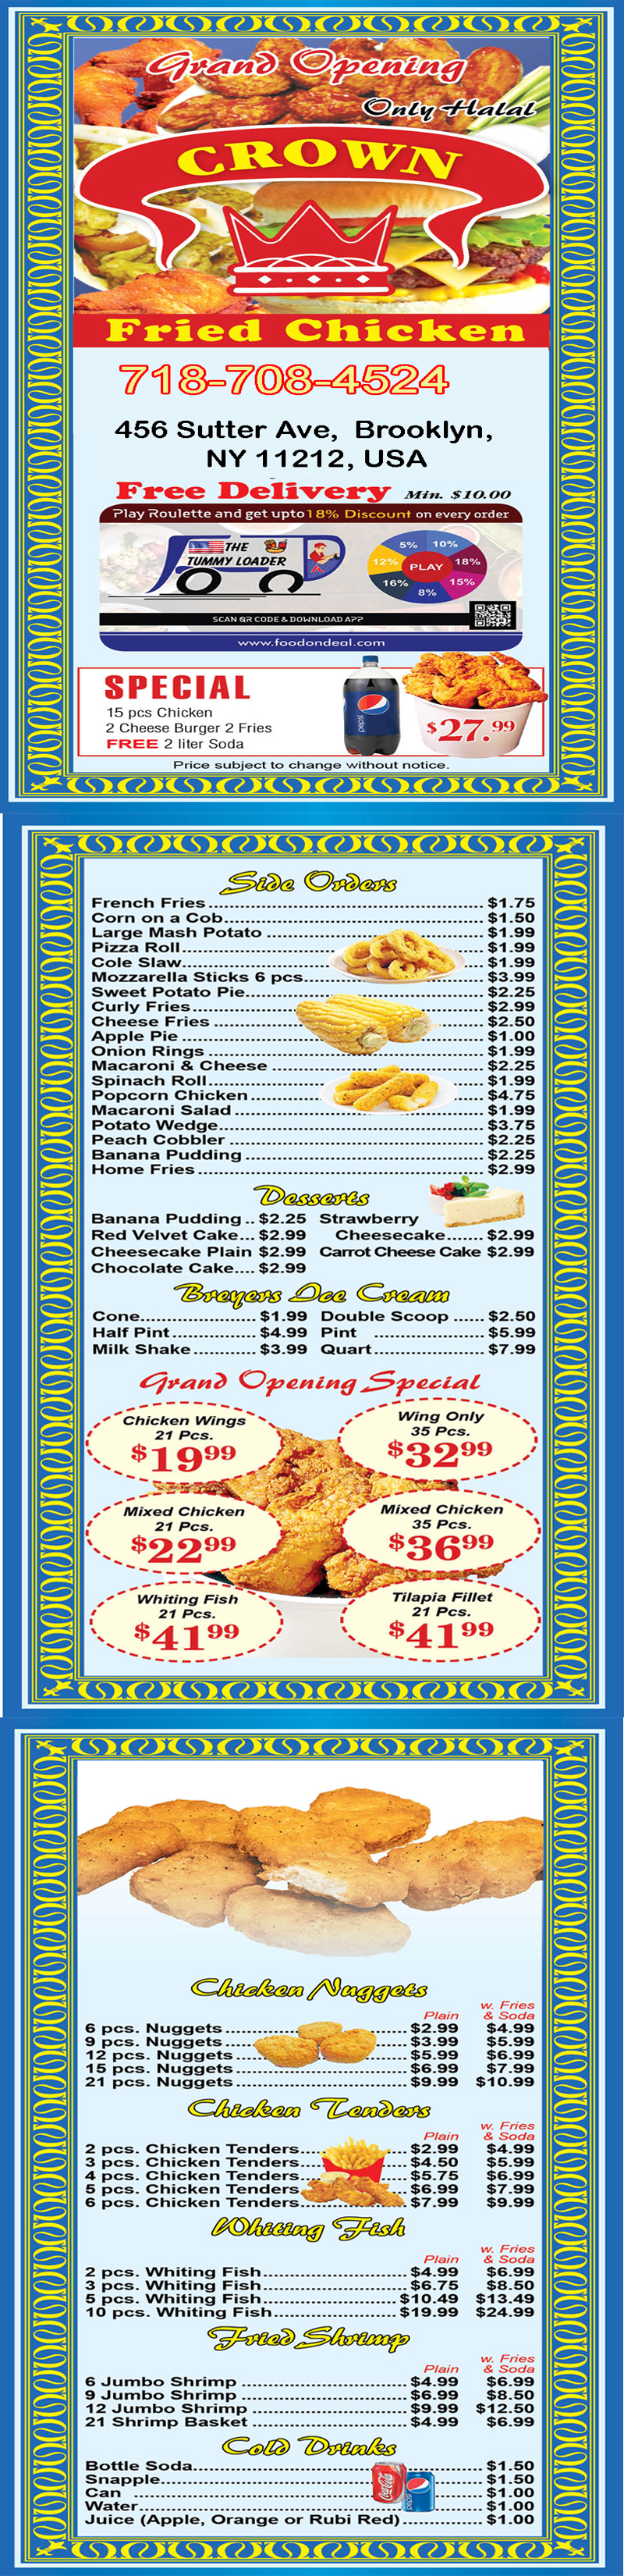 Crown Fried Chicken 456 order menu